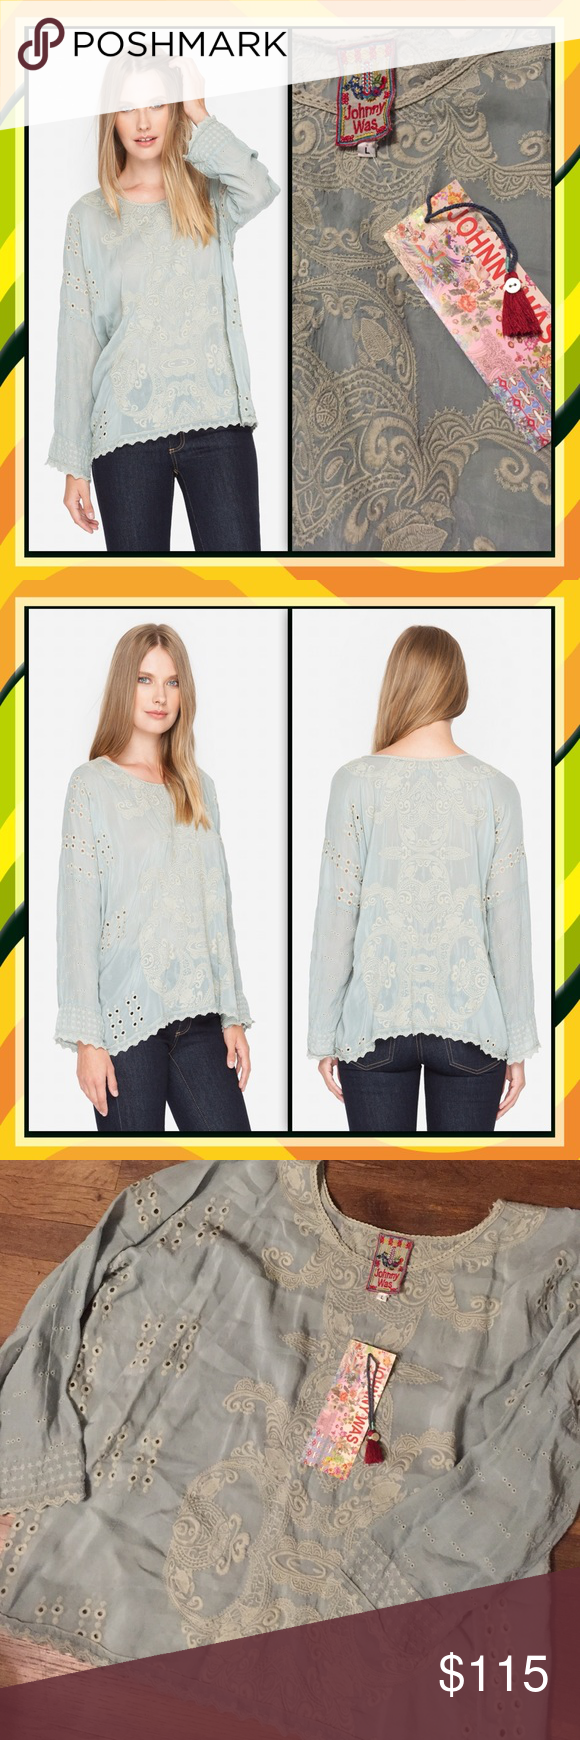 """Lightweight Embroidered Top Blouse Johnny Was Johnny Was ALONA SCOOP TOP with tonal embroidery   —100% Capra Rayon —Scoop Neck —Slip On Style —Care Instructions: Machine Wash Cold, Tumble Dry Low —Measures Bust: 54"""", Length: 26"""" Johnny Was Tops Tunics"""